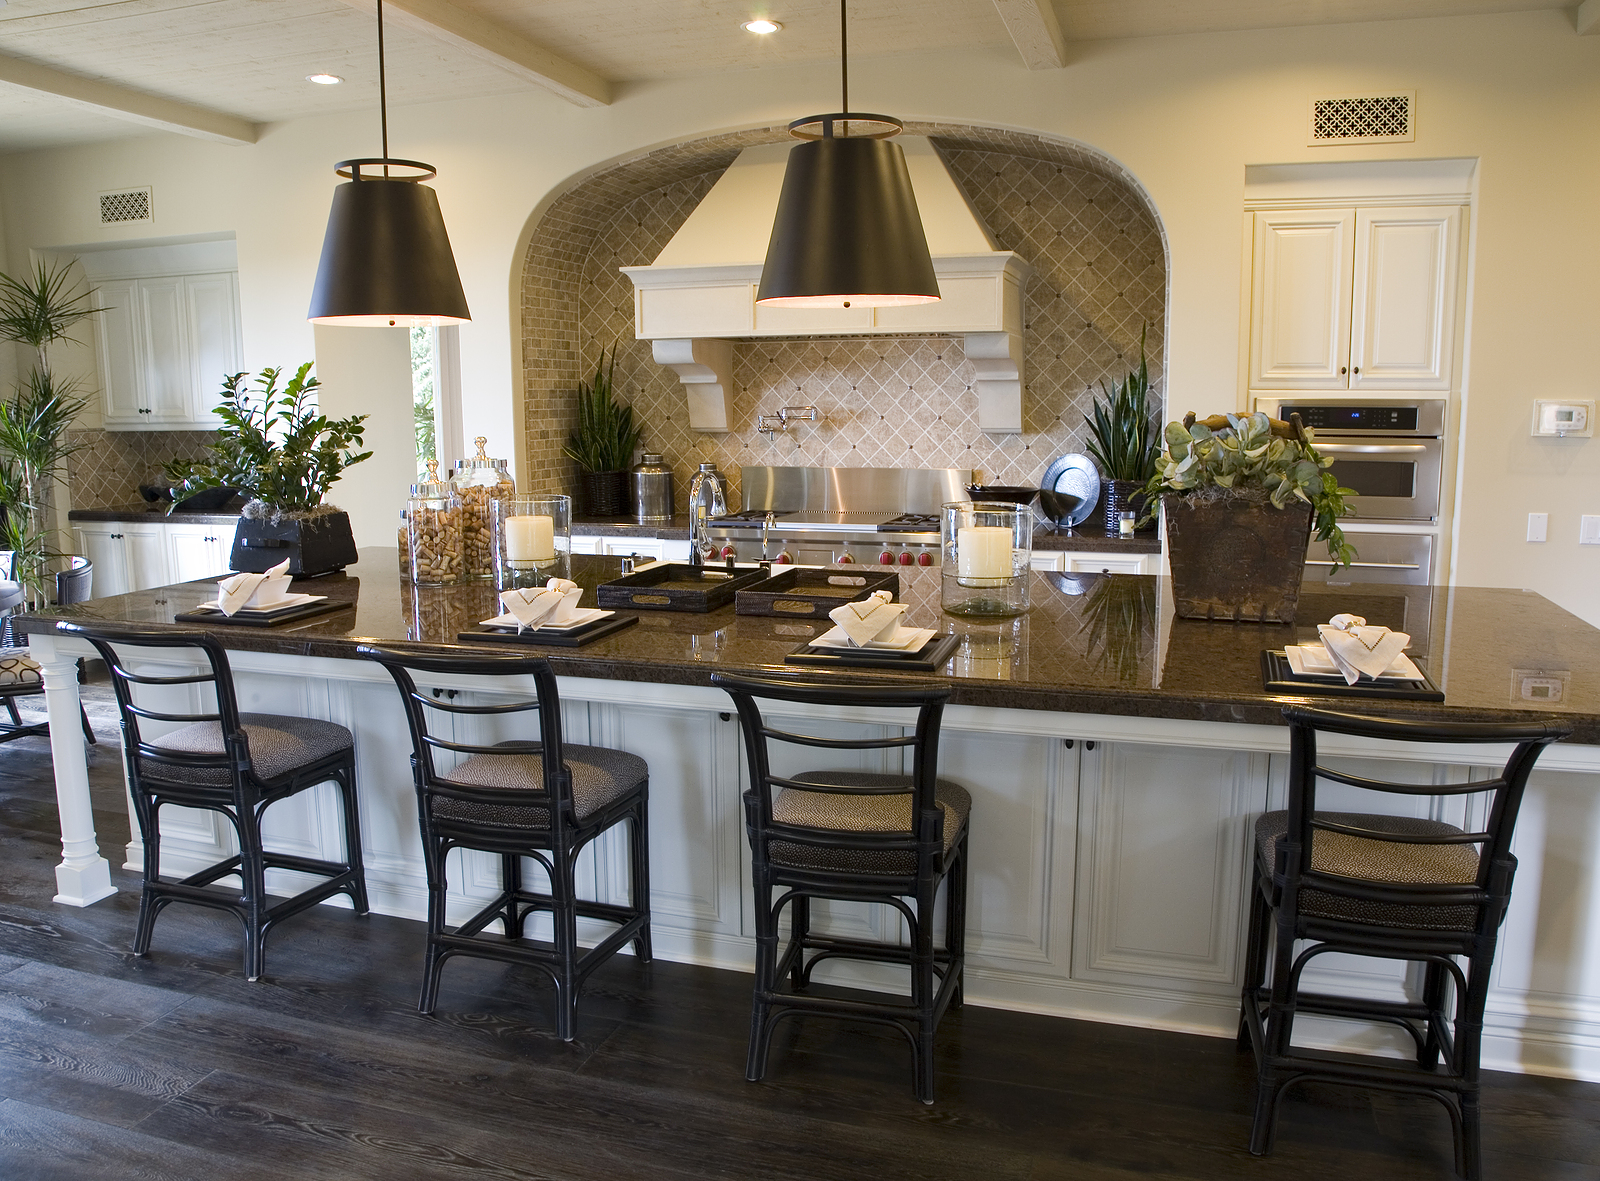 What To Keep In Mind When Planning A Kitchen Renovation | The Art of ...